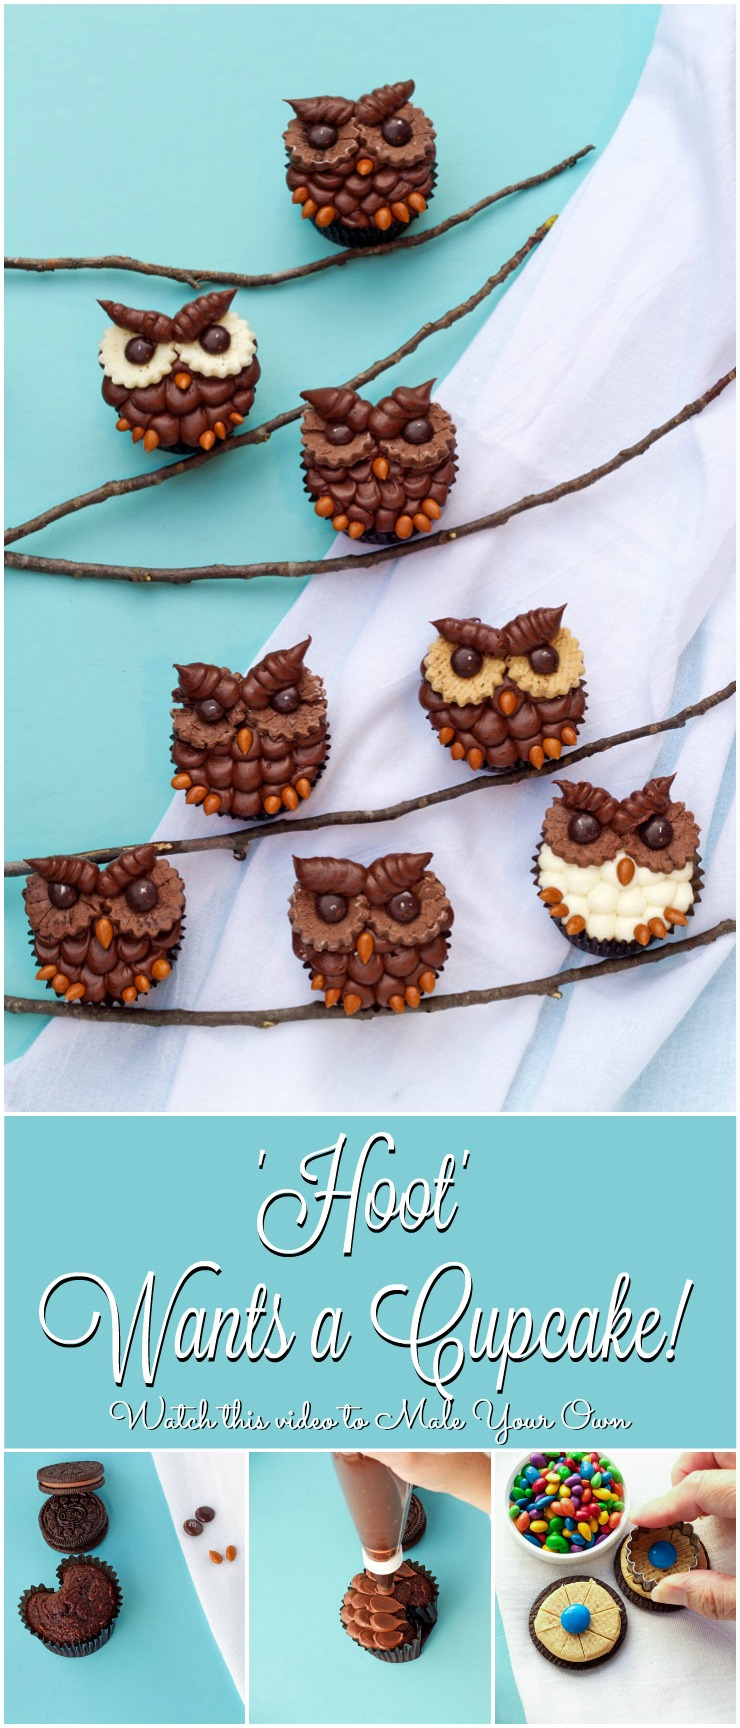 How to Make Simple Owl Cupcakes Tutorial with a Video | The Bearfoot Baker